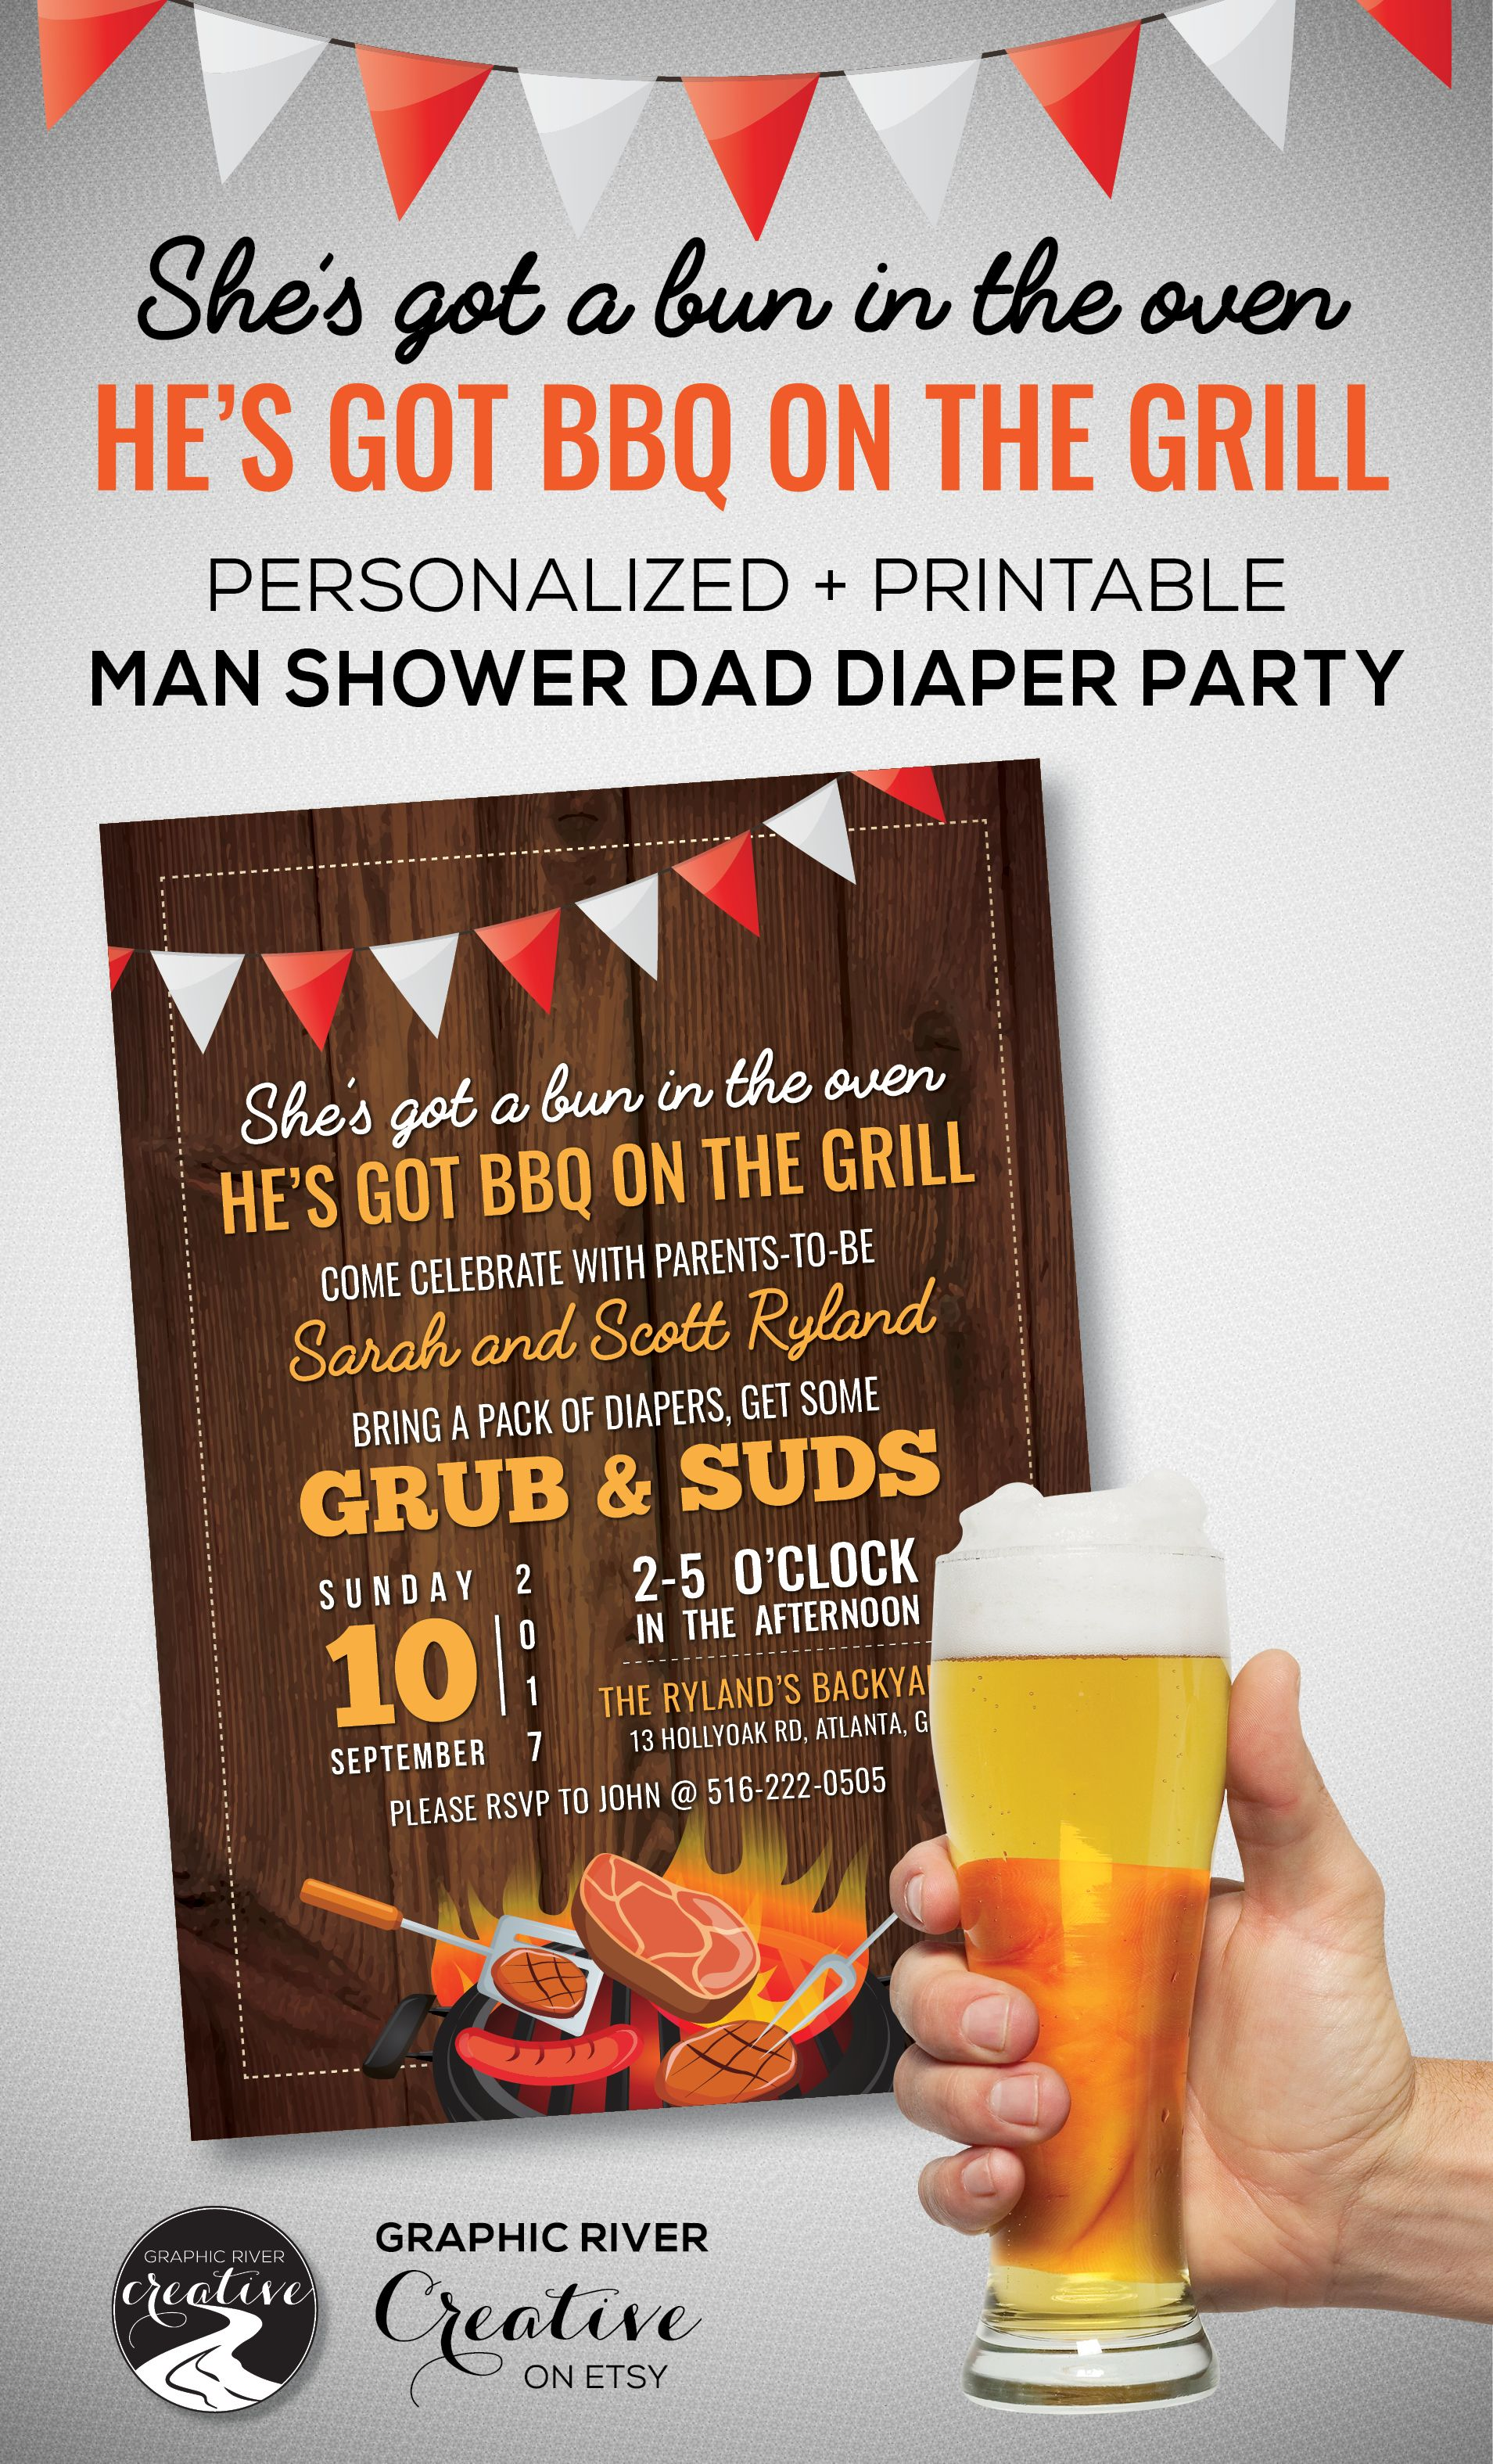 Personalized + Printable Beer BBQ Diaper Party Man Shower Bun in the ...